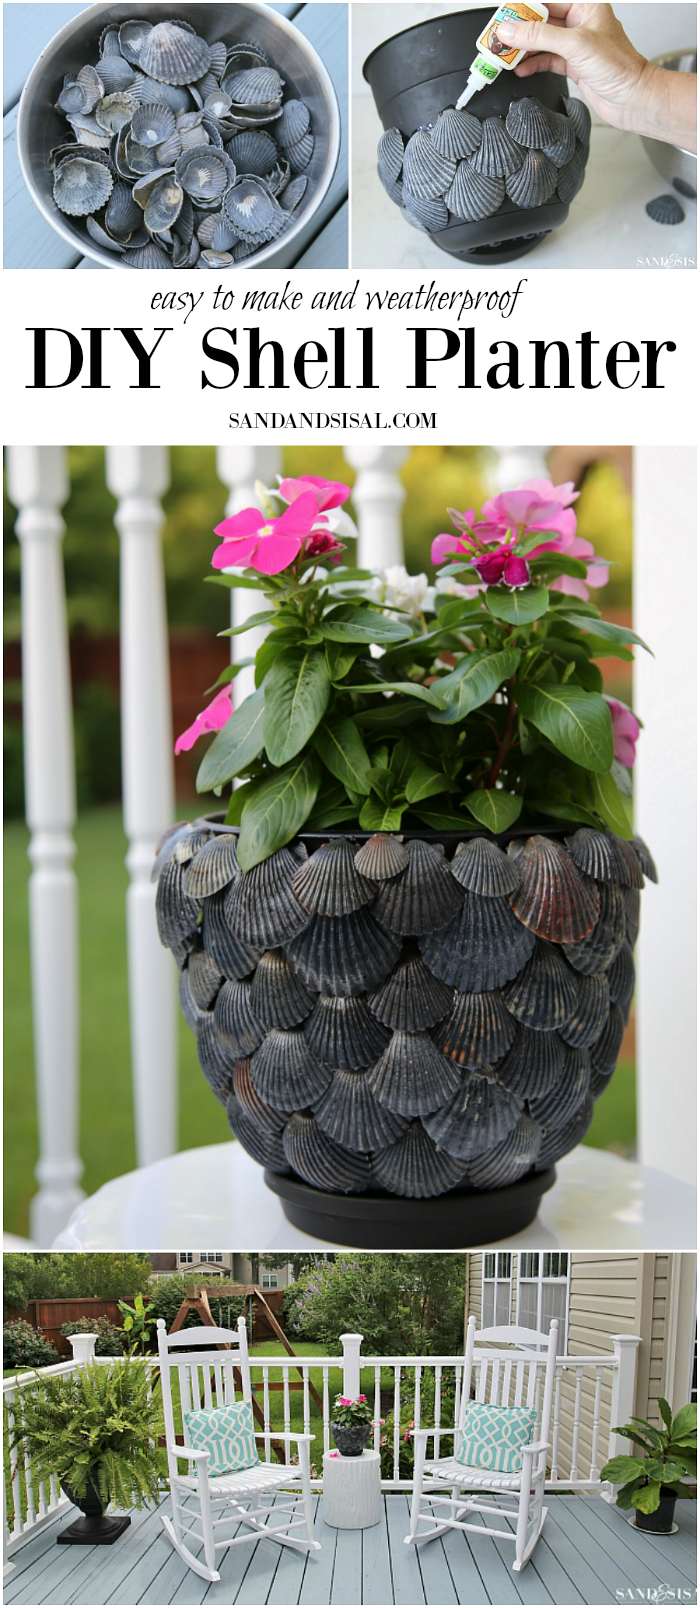 DIY Shell Planter - a fun and simple shell craft